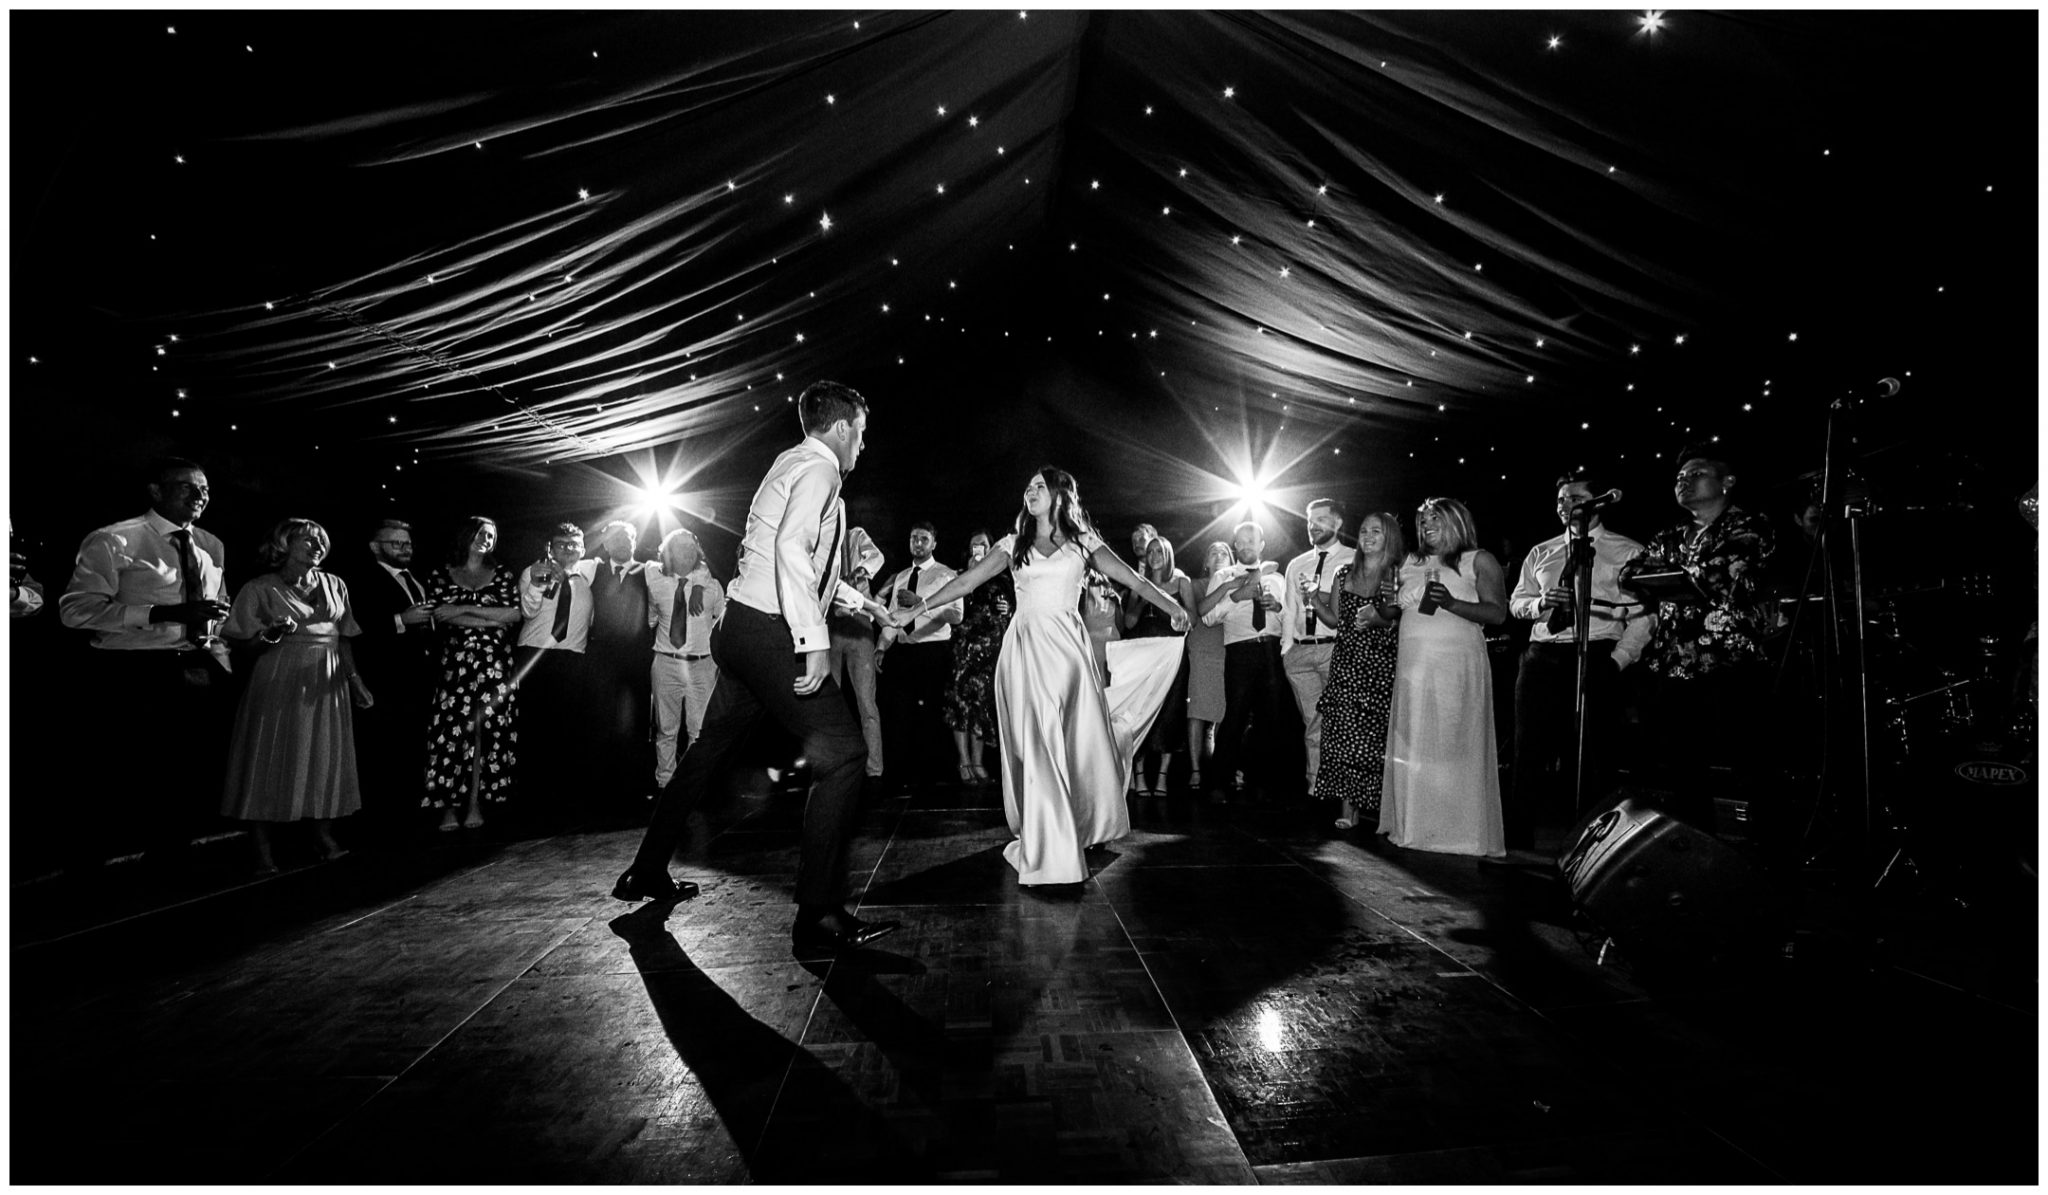 Wedding guests surround the couple for their first dance